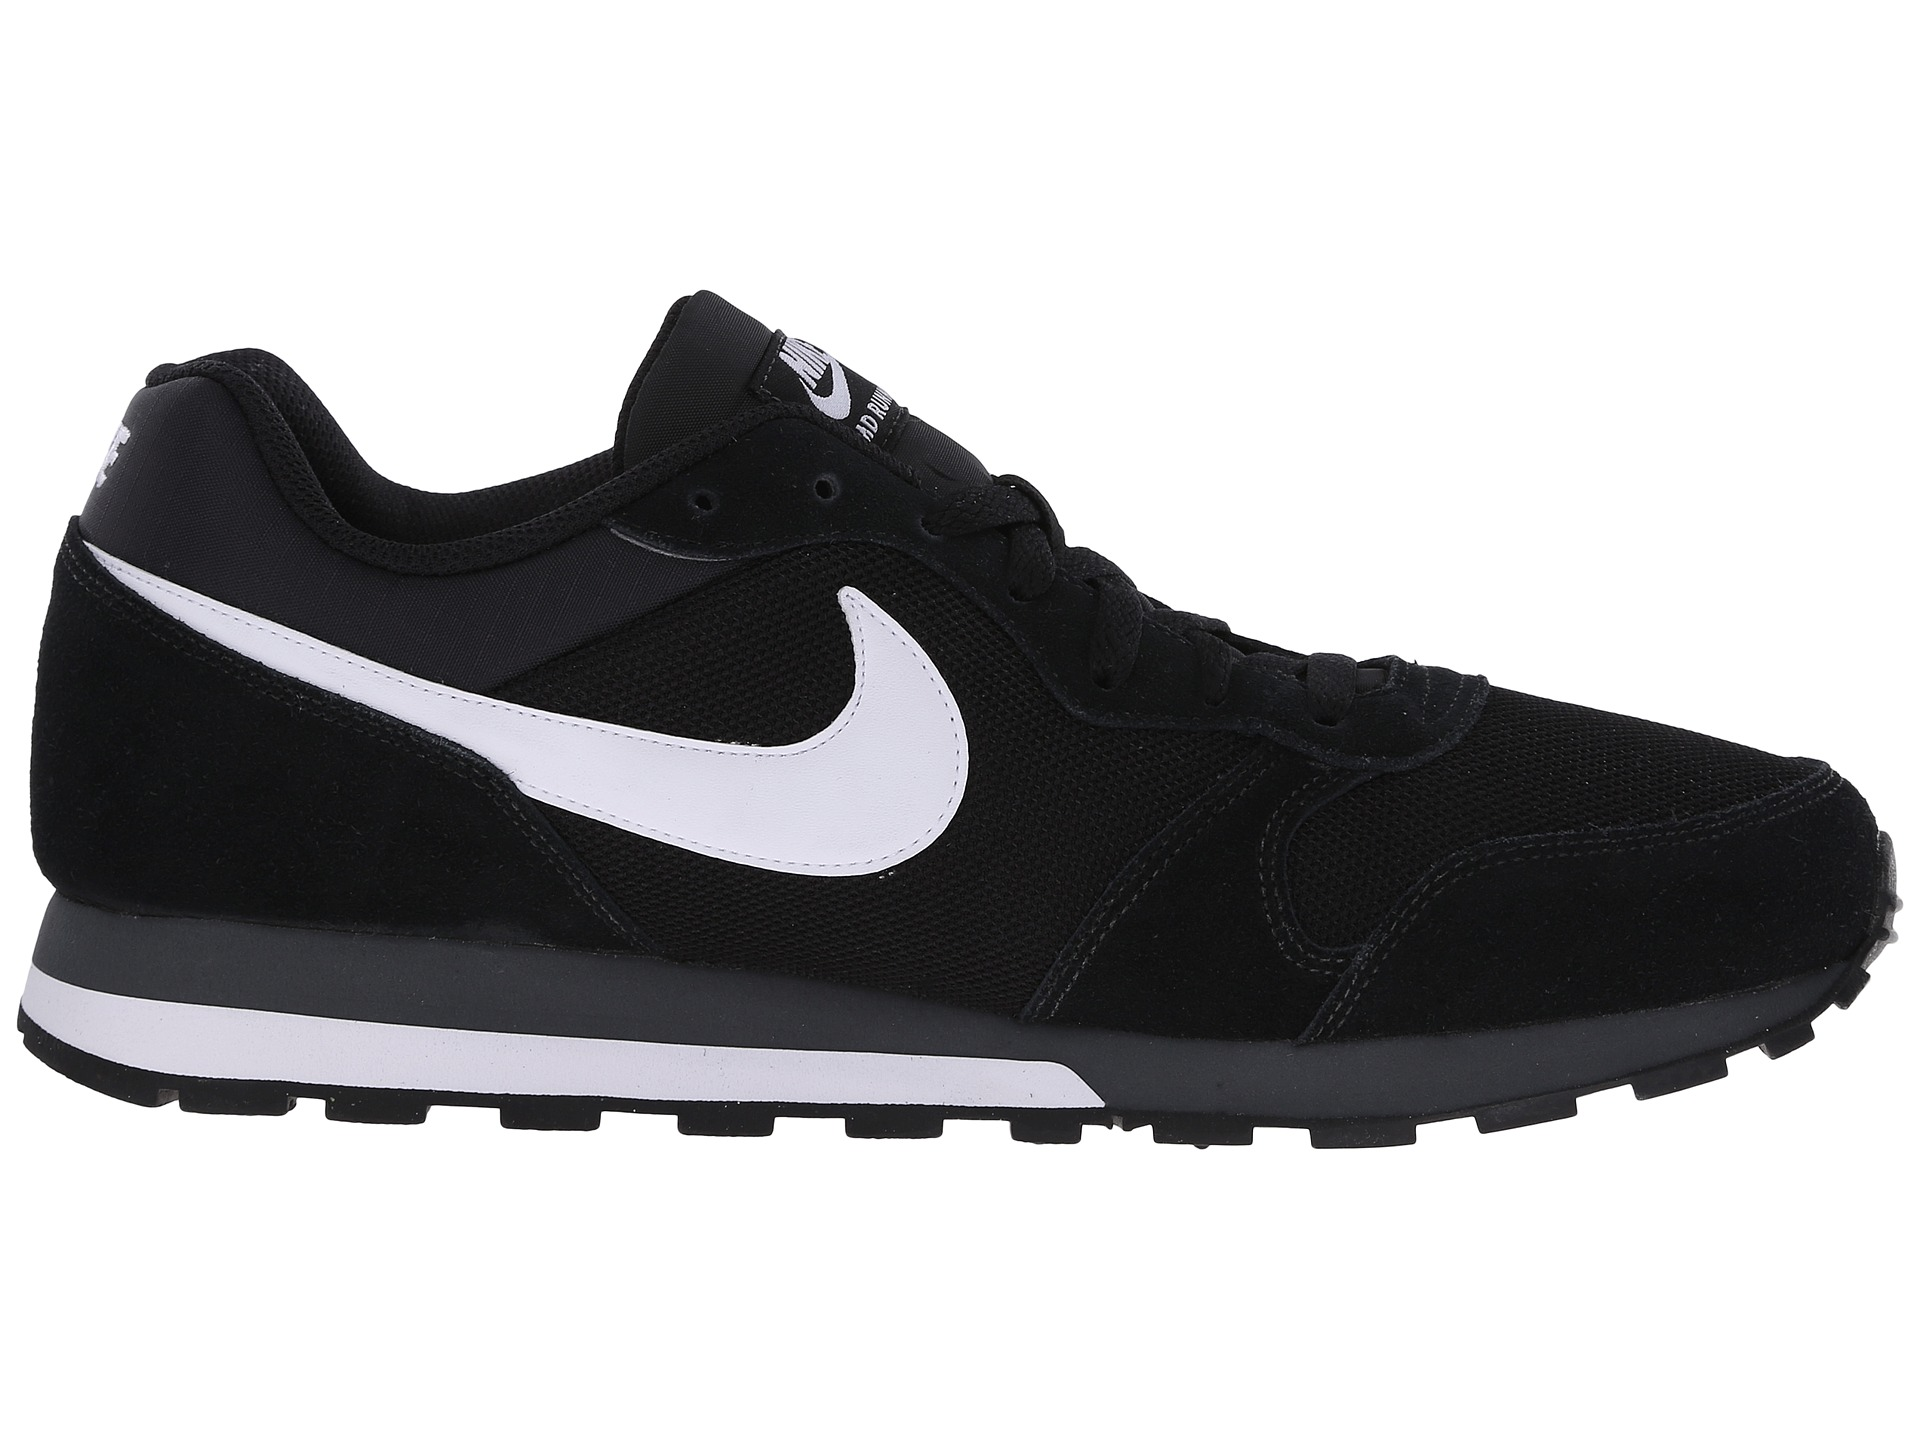 nike air max moto 9 sku - Nike MD Runner 2 - Zappos.com Free Shipping BOTH Ways